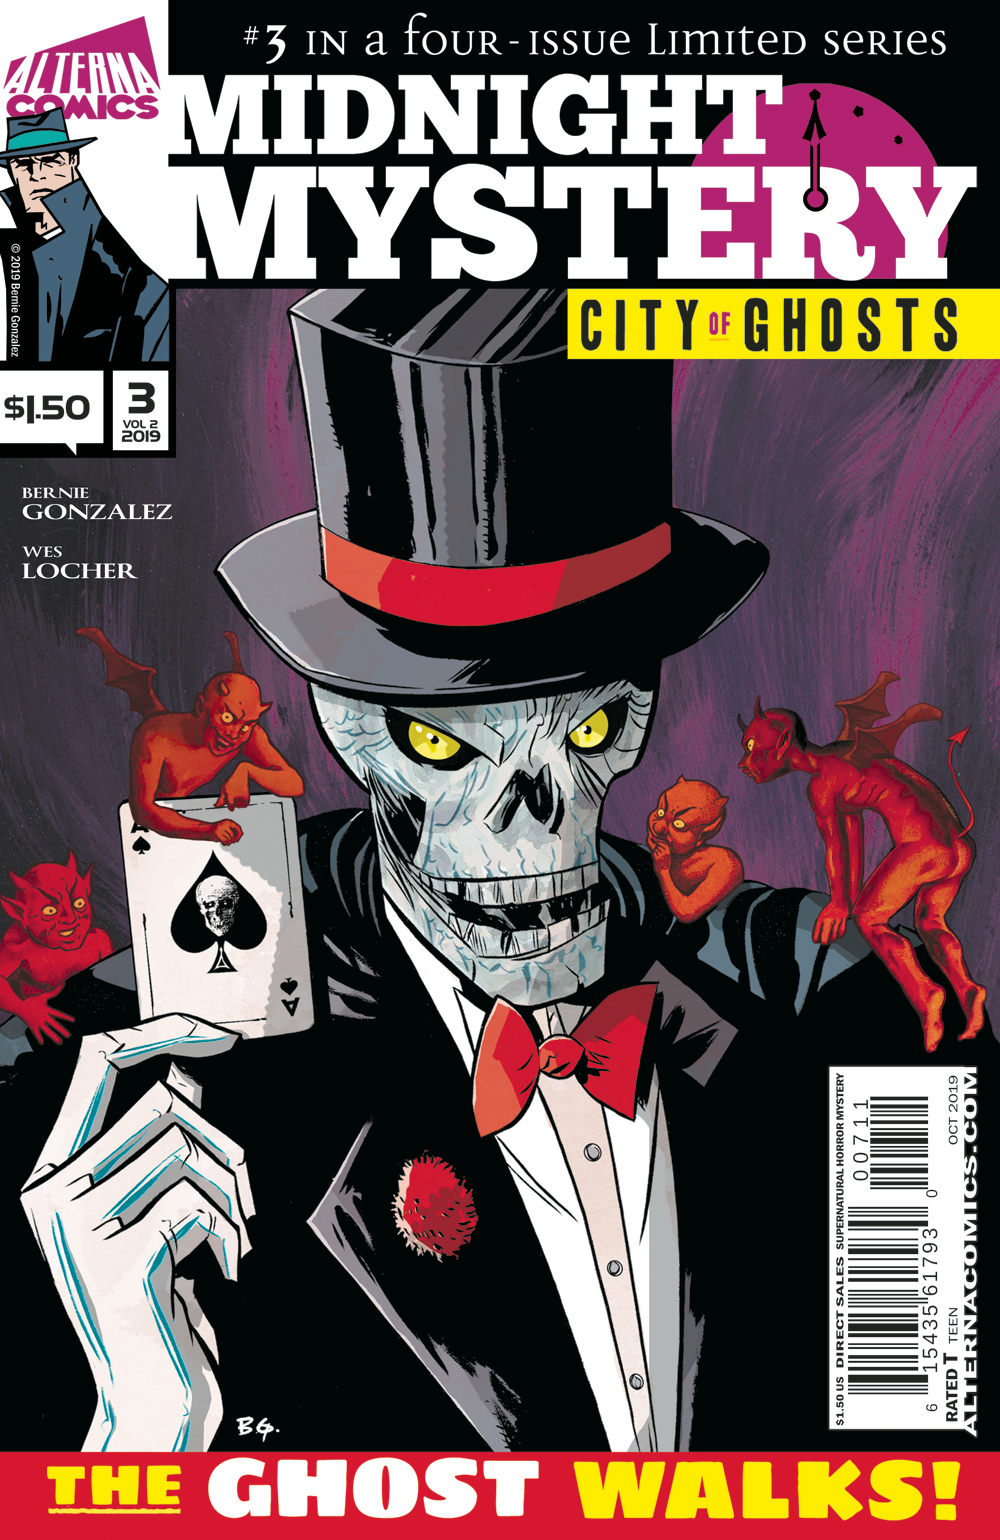 MIDNIGHT MYSTERY VOL 2 CITY OF GHOSTS #3